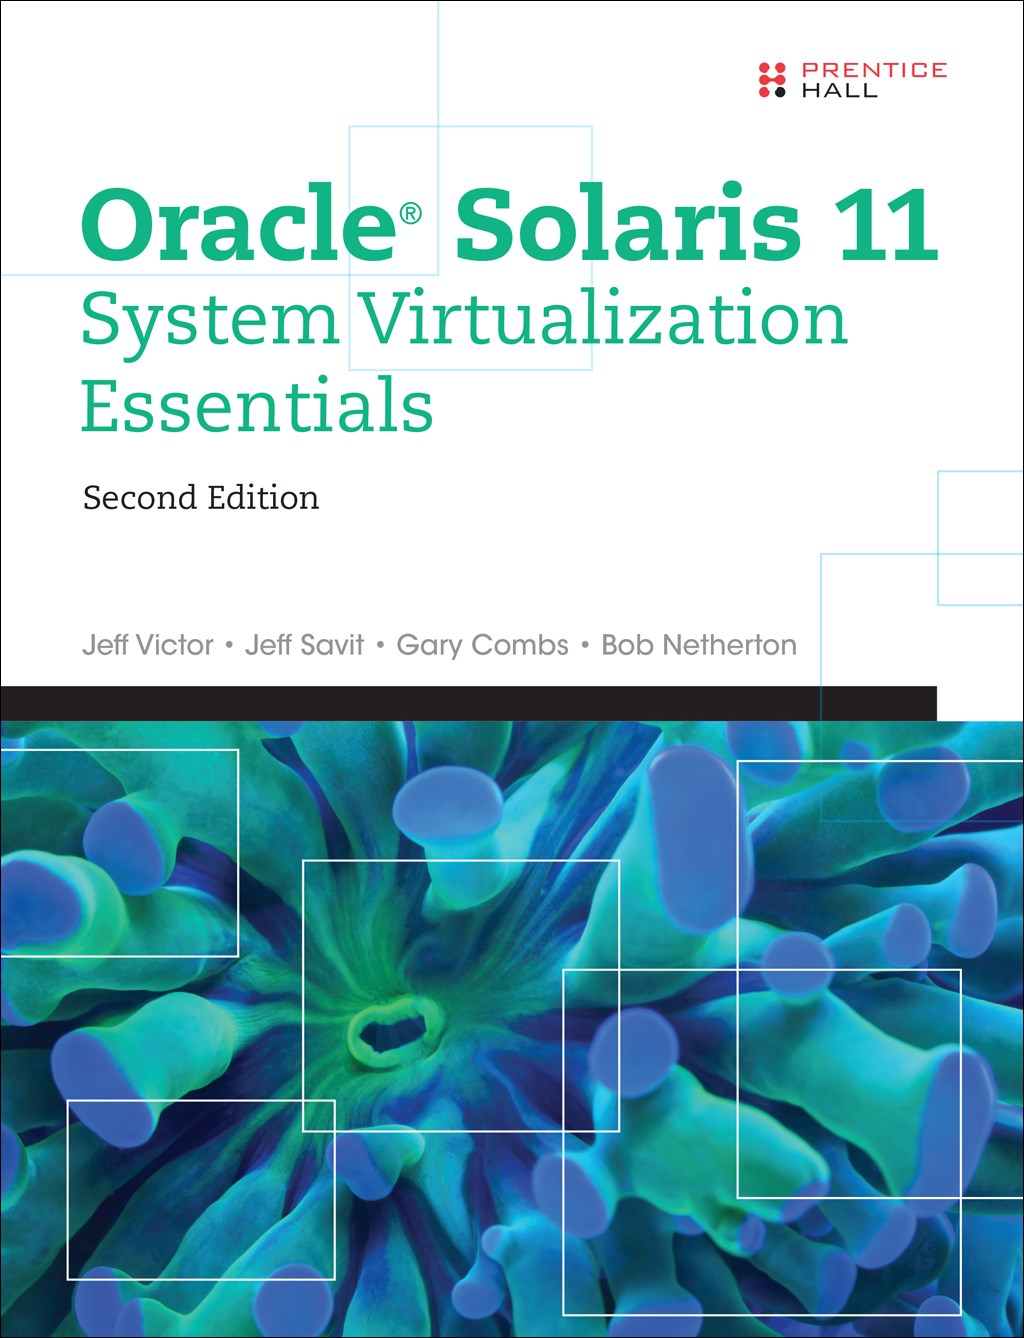 Oracle Solaris 11 System Virtualization Essentials